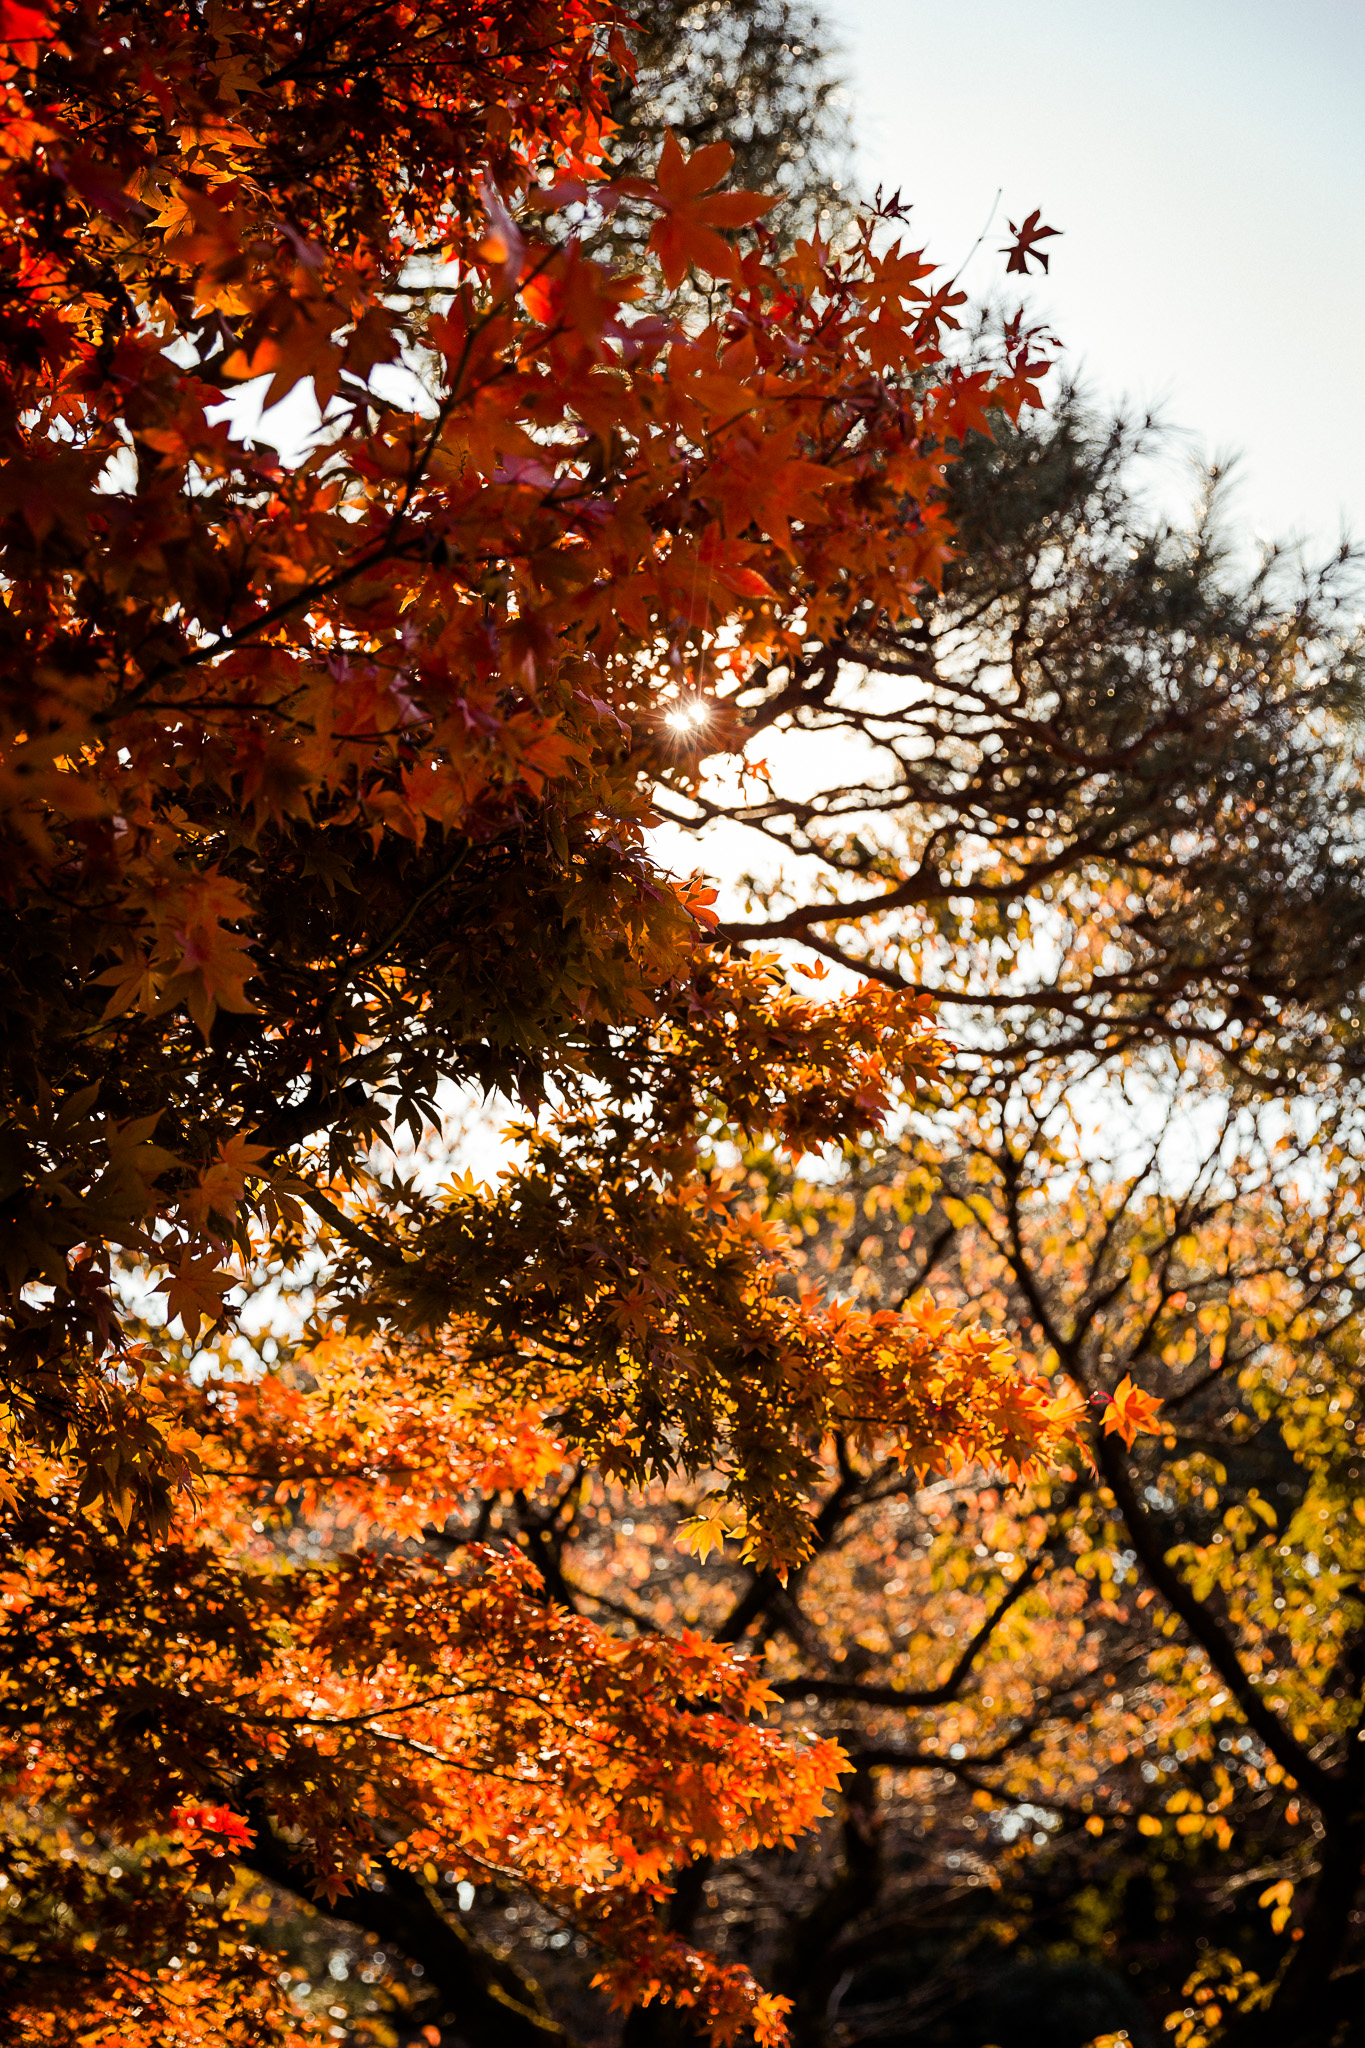 Autumn Foliage in Shinjuku Gyoen